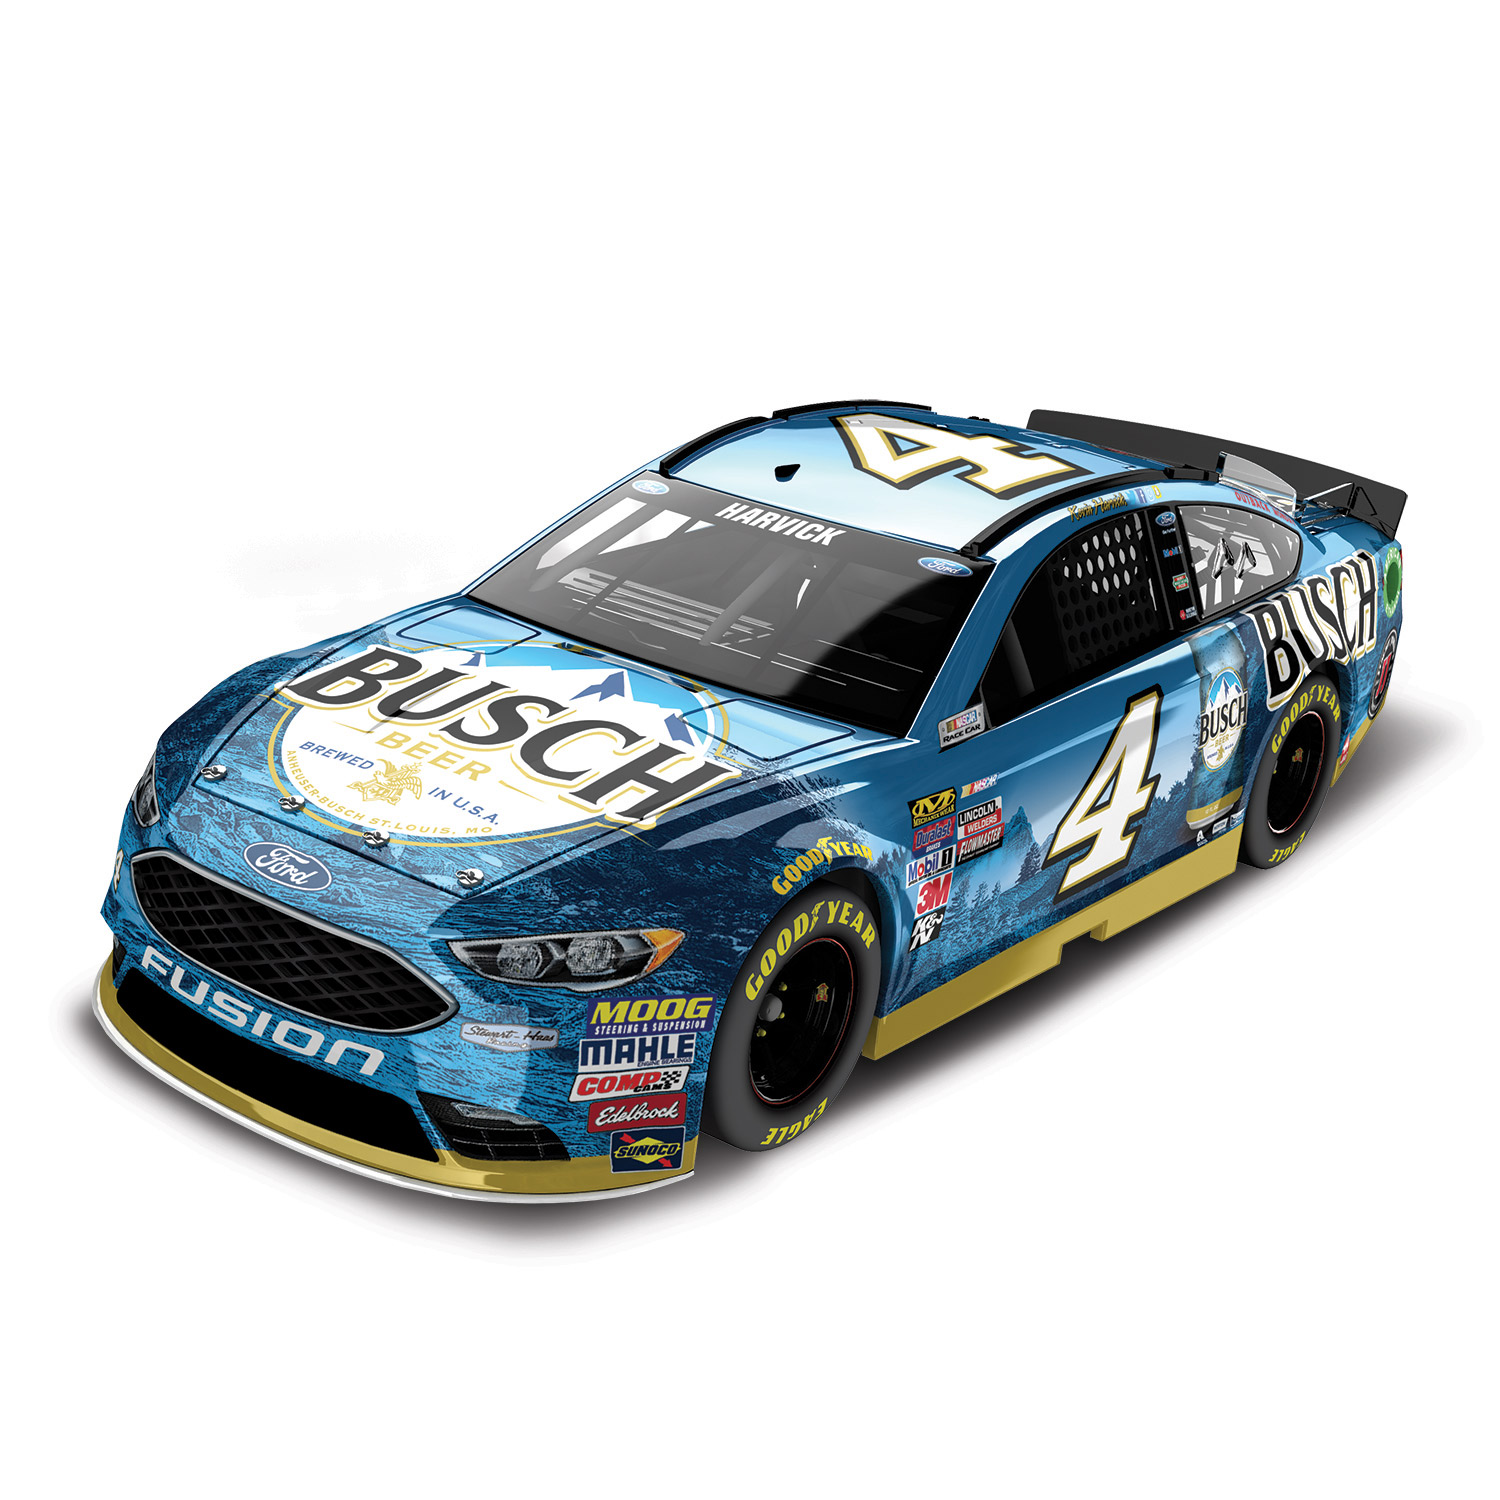 Action Racing Kevin Harvick 2017 #4 Busch 1:24 Monster Energy Nascar Cup Series Color... by Lionel LLC